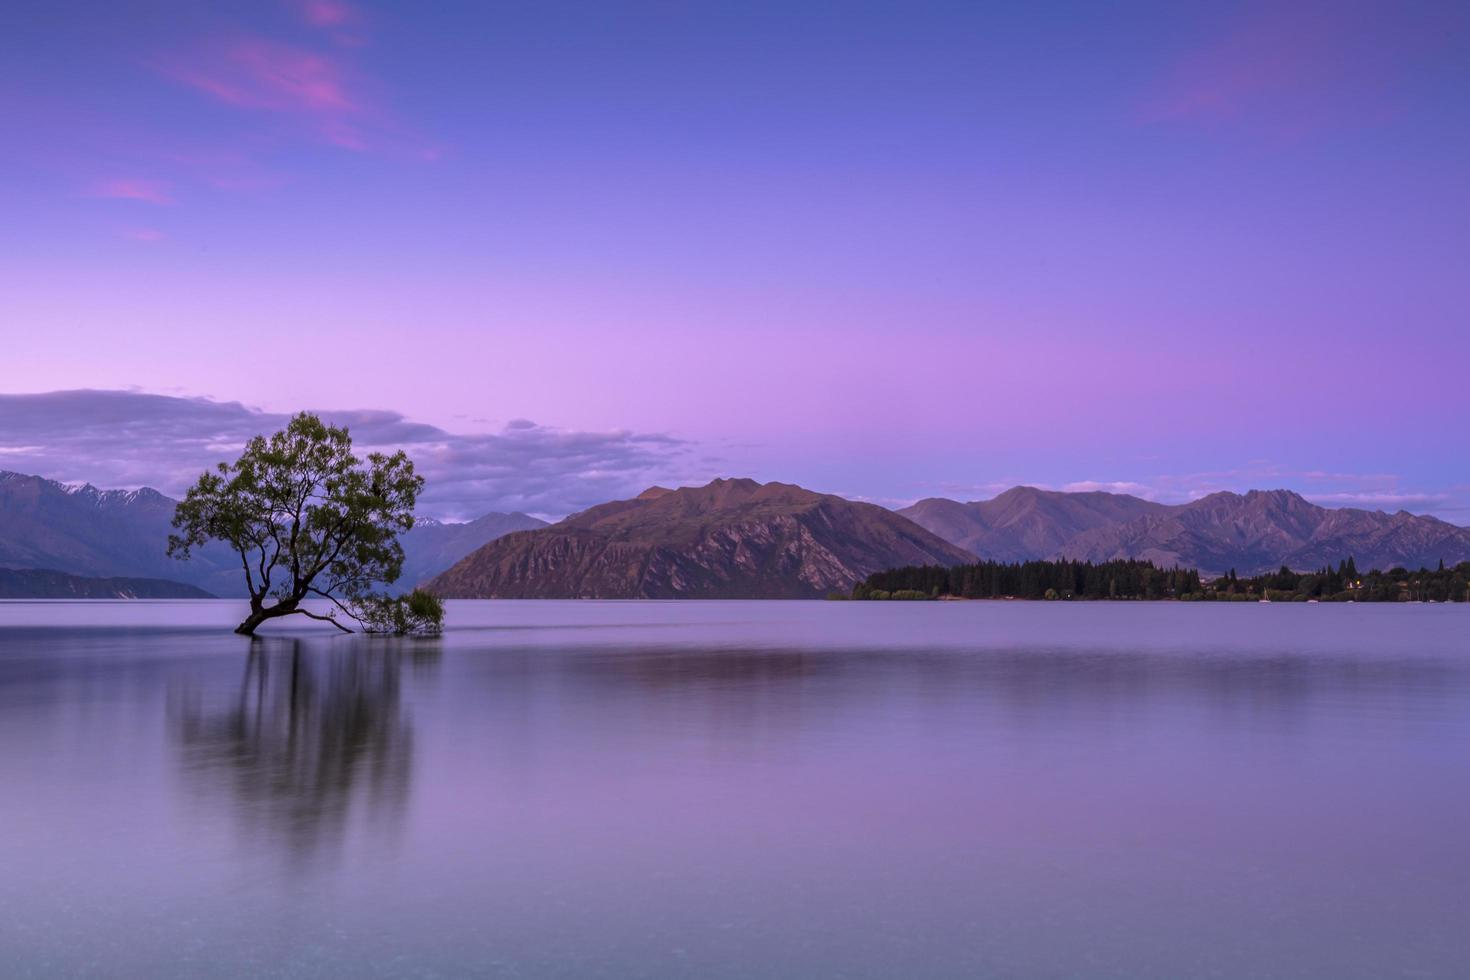 Tree in body of water near mountains photo